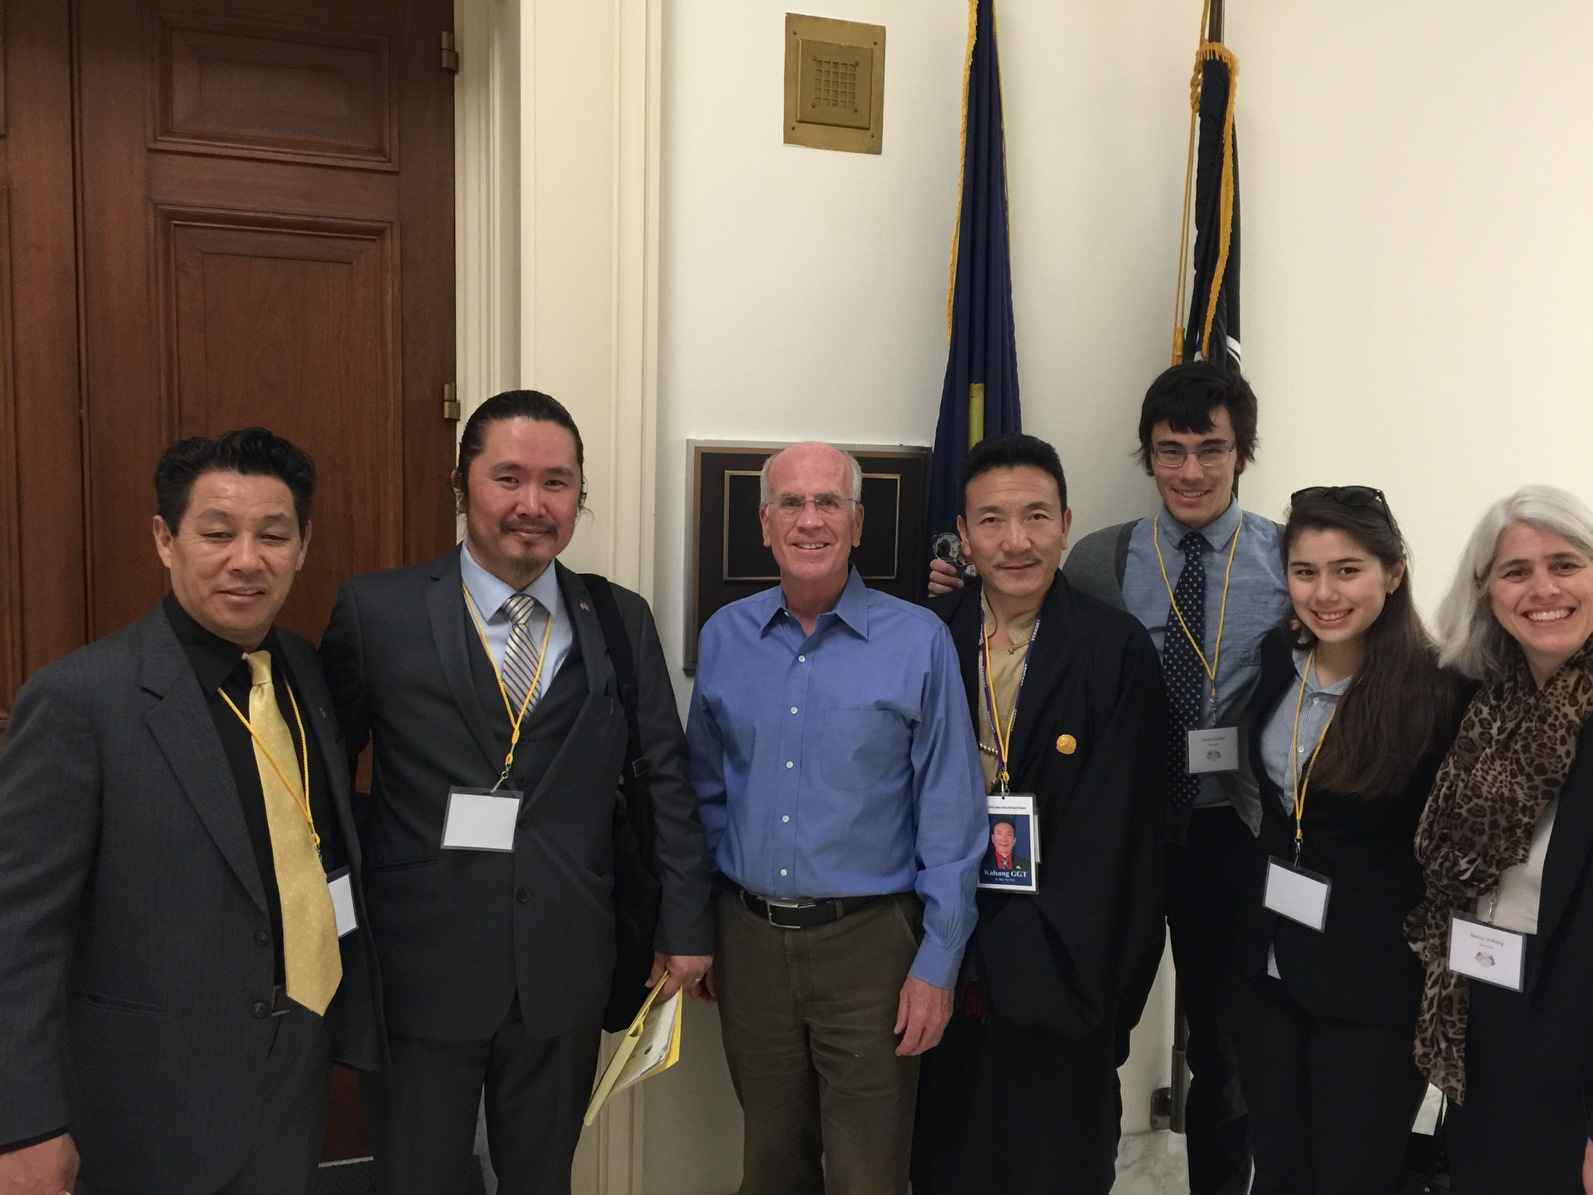 Vermont Congressmen Welch with members of the Tibetan Association of Vermont